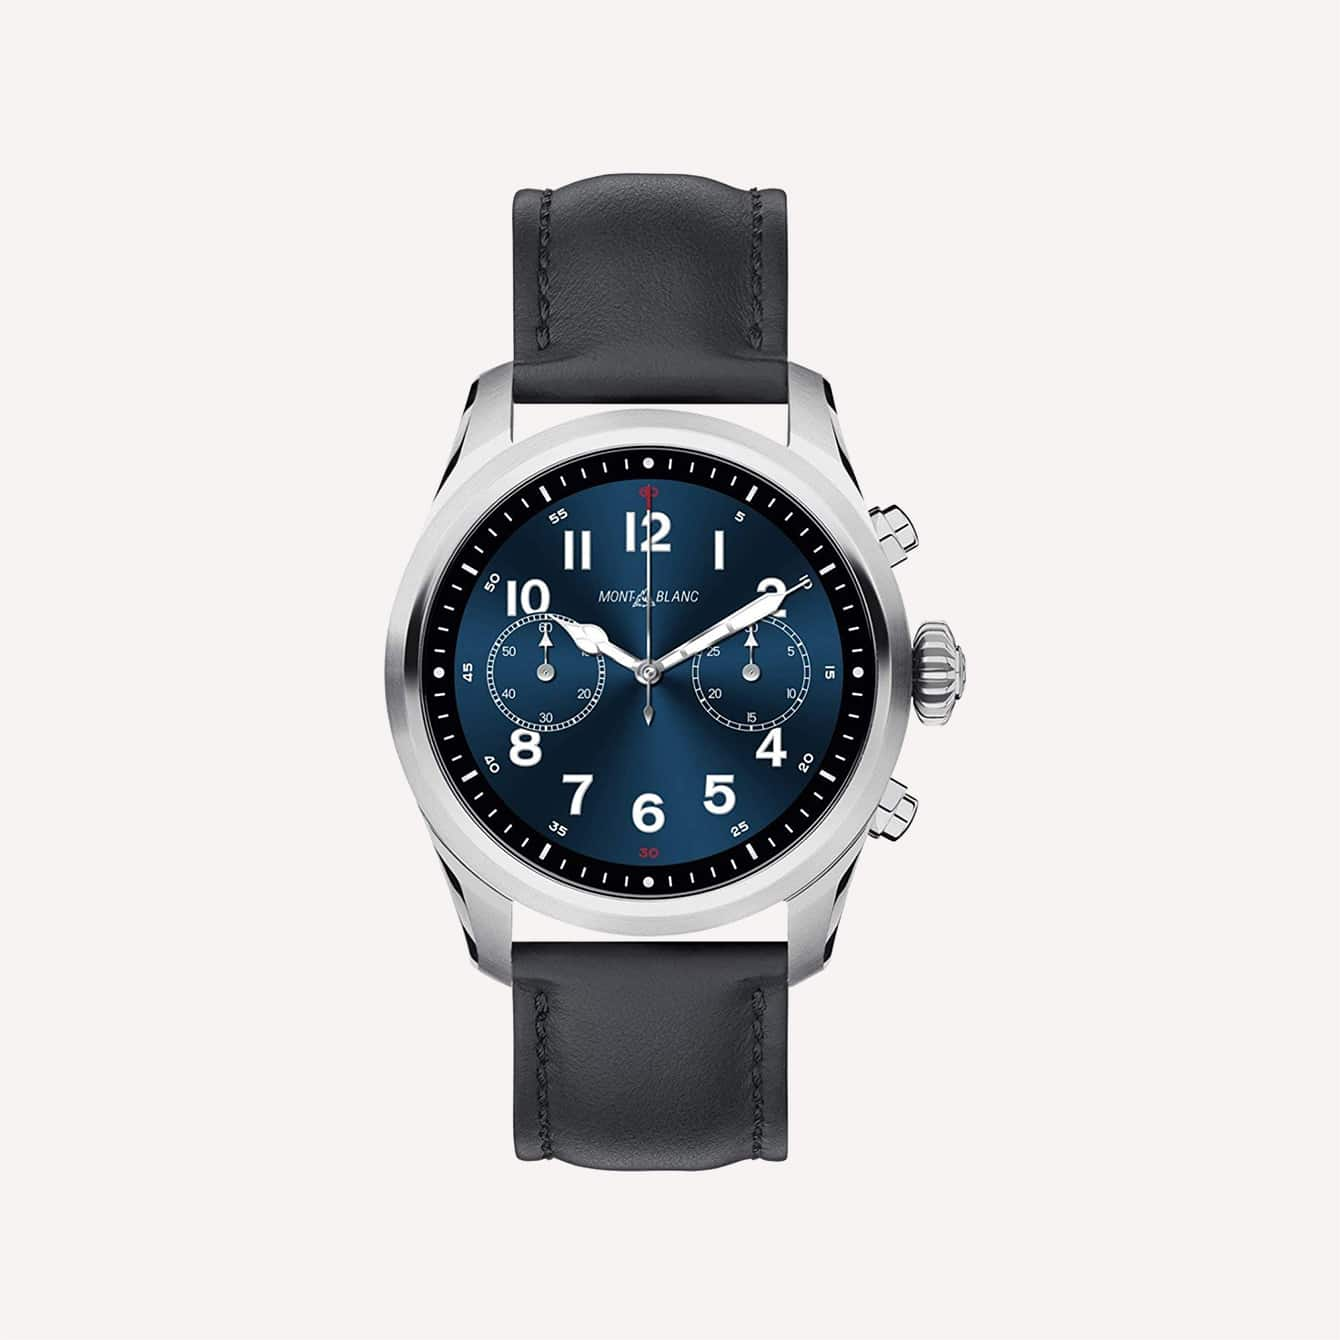 Cathedral Hands Watch Montblanc Summit 2 Smartwatch 119440 Stainless Steel Black Leather